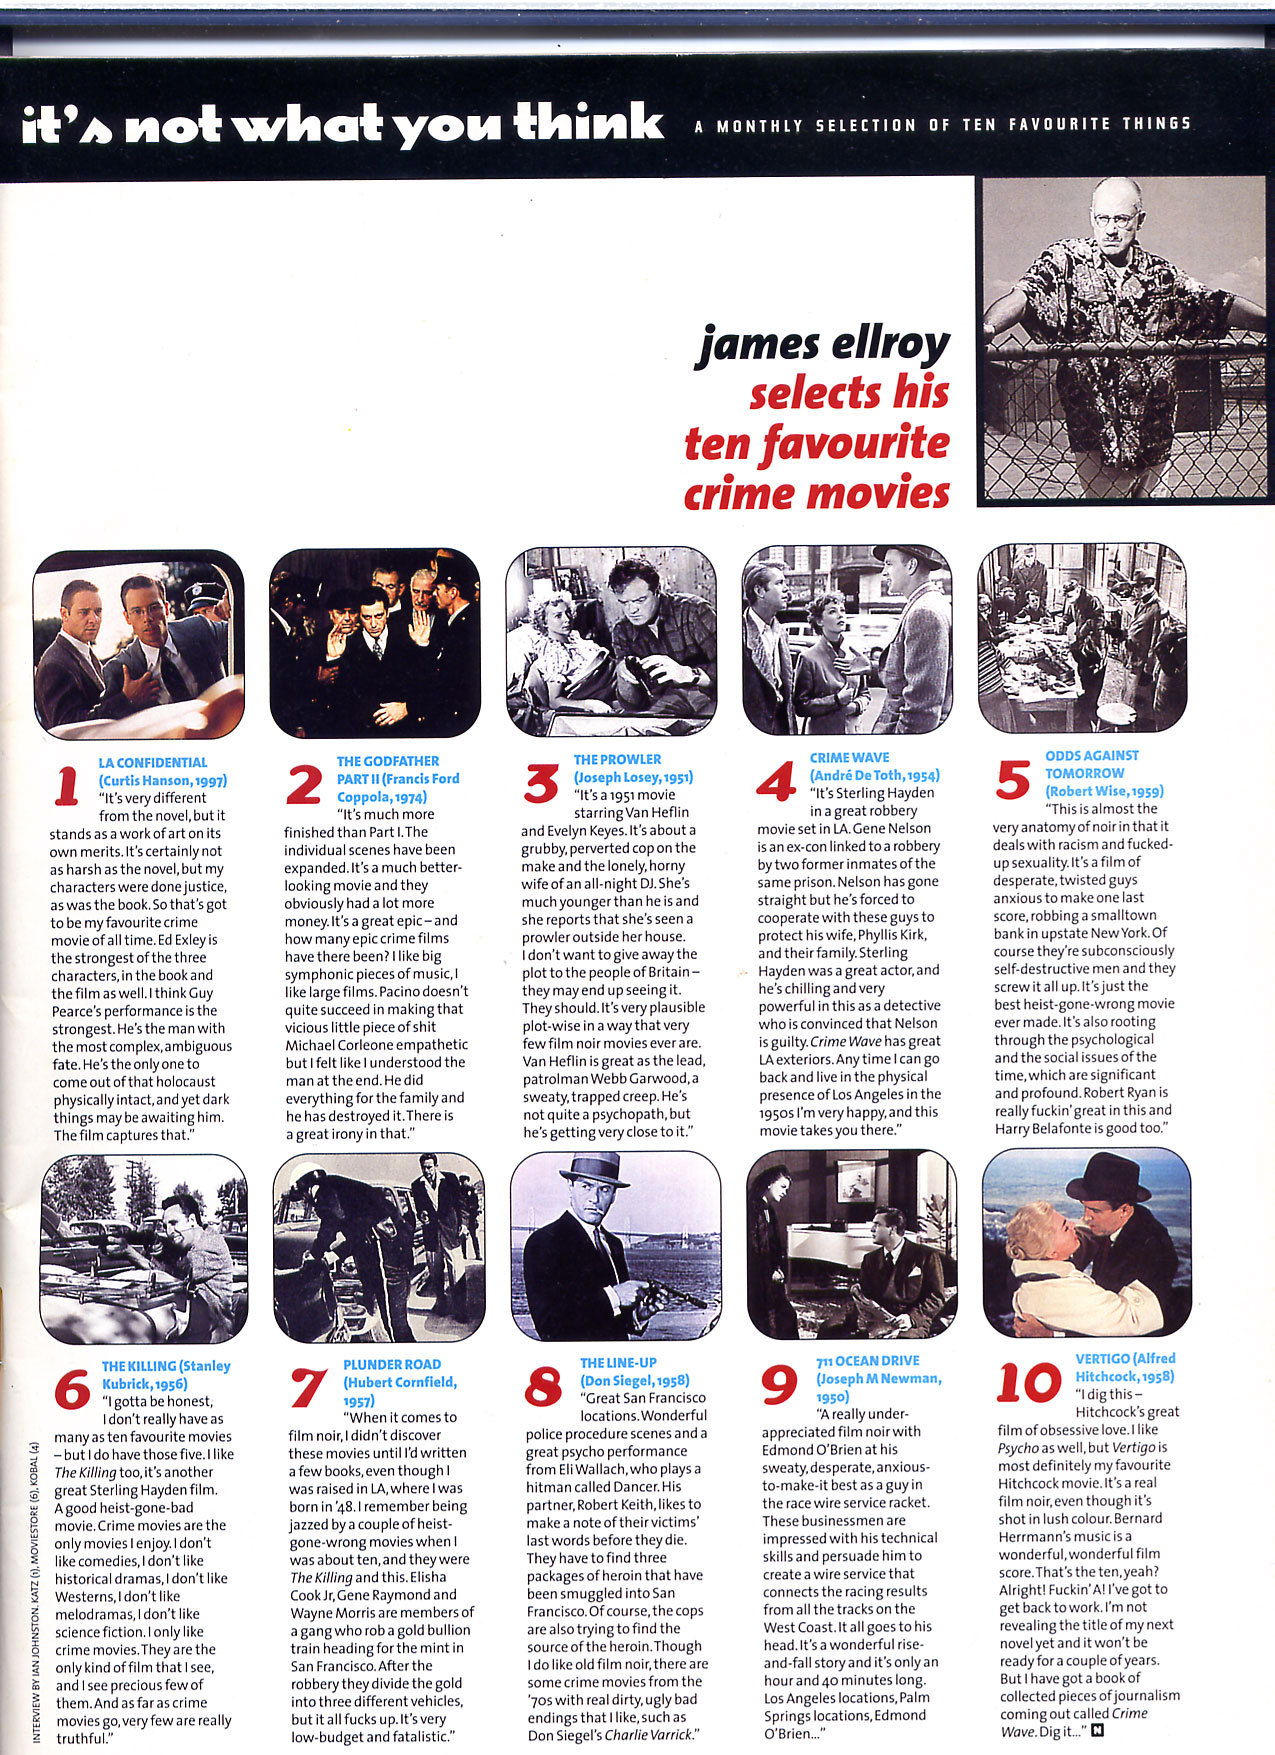 James Ellroy selects his ten favourite crime films — July '98 This is a rare clip of James Ellroy, in his trademark Hawaiian shirt (worn in pouring rain), interviewed for the French program Cinéma Cinémas in 1989. —James Ellroy: An early interview with the Demon Dog of American Literature  LA's two literary lights, both of who are rather lost at this point, kick around Beverly Hills in 2008, discussing fuckpads, Frascati's, and Schaeffer's ambulances.  Enjoy, read, and learn: L.A. Confidential screenplay by Brian Helgeland. (NOTE: For educational purposes only)